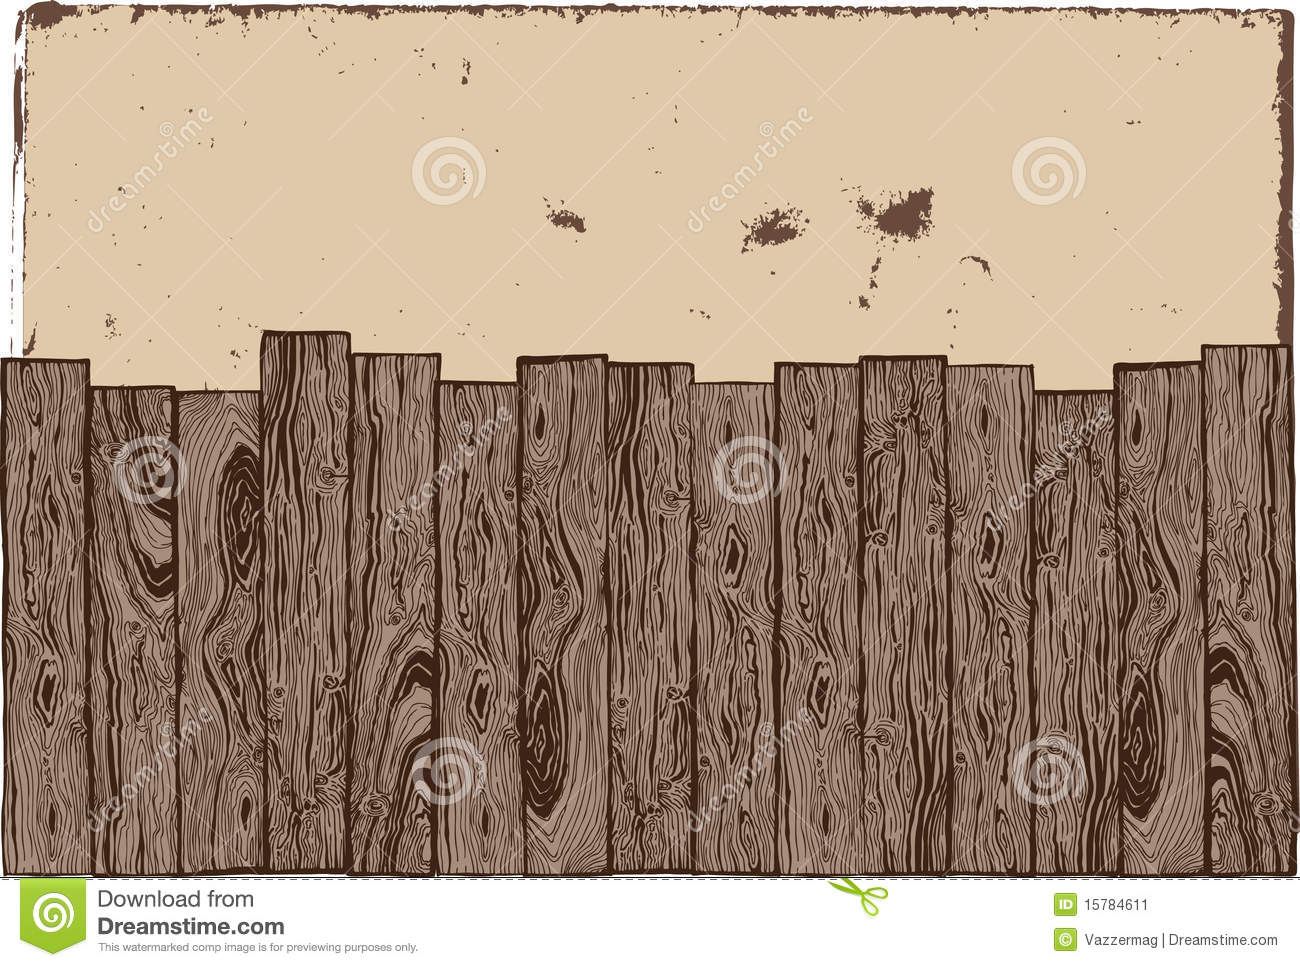 Fence Drawing Wooden Fence With Grunge Background Drawing Nongzico